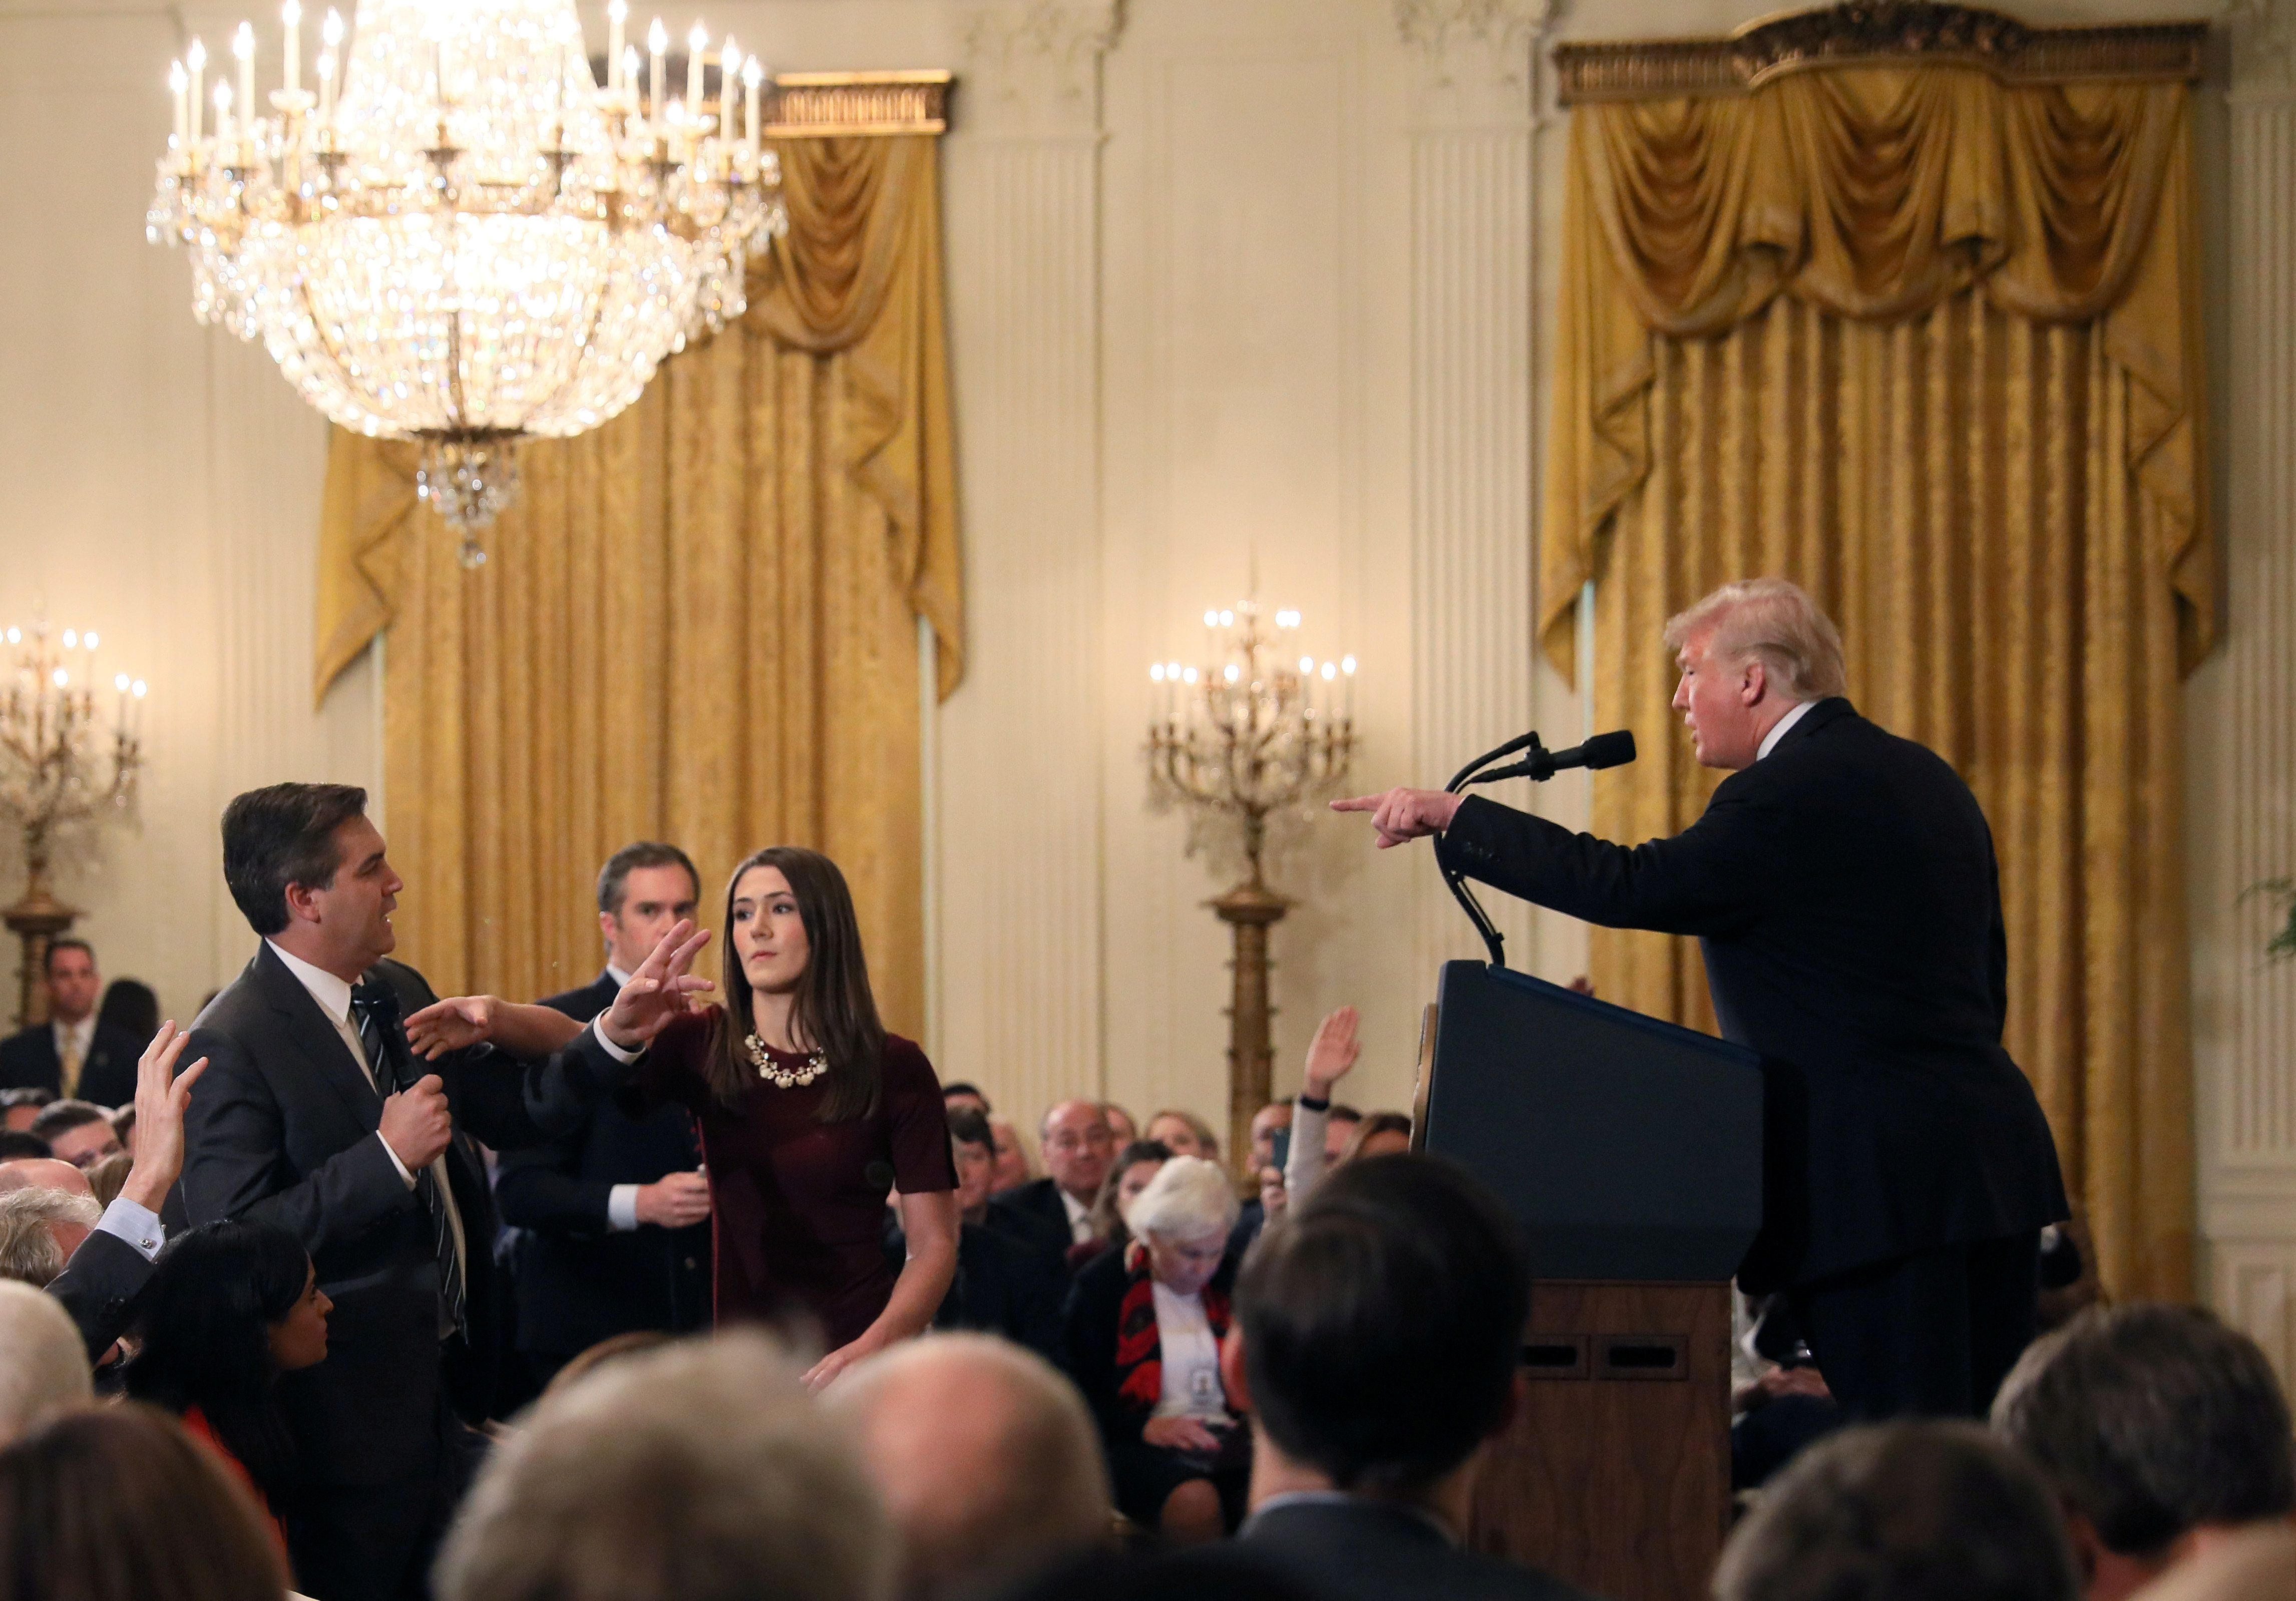 White House Expels CNN's Top Reporter After Accusing Him Of Assaulting